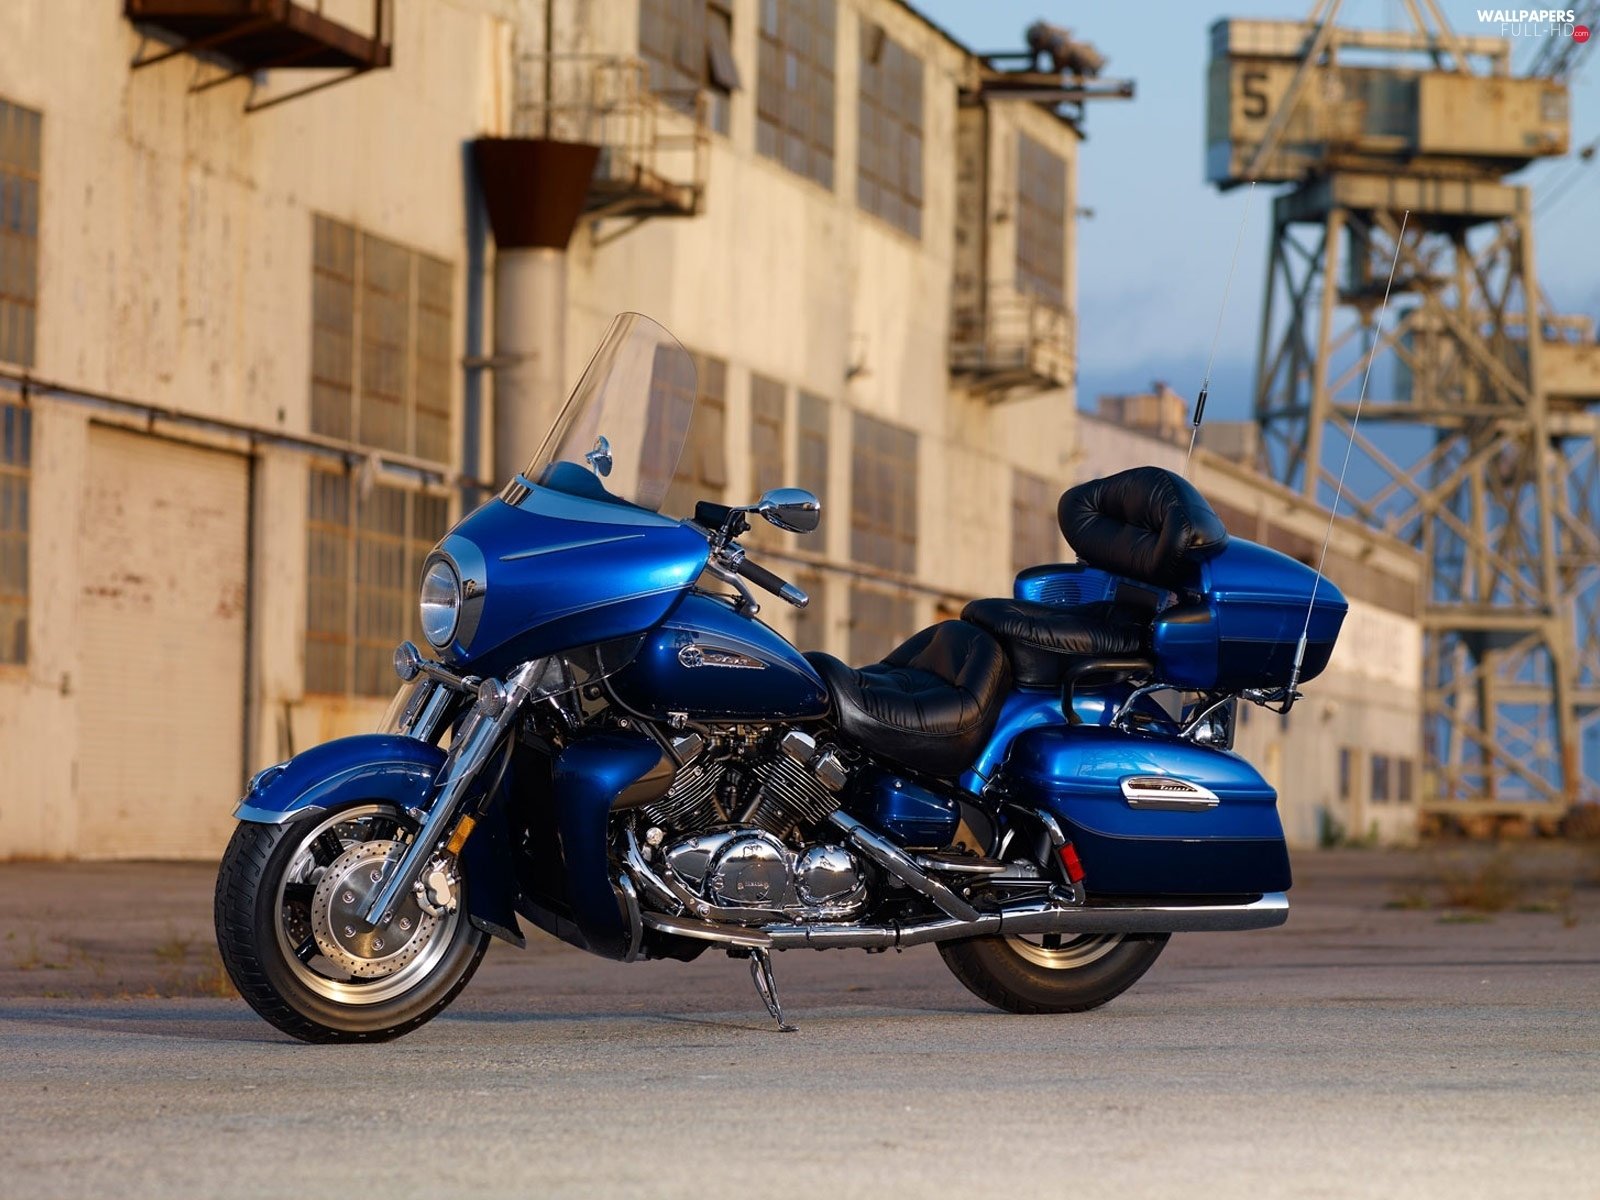 Yamaha Royal Star Venture, Chromium, Blue